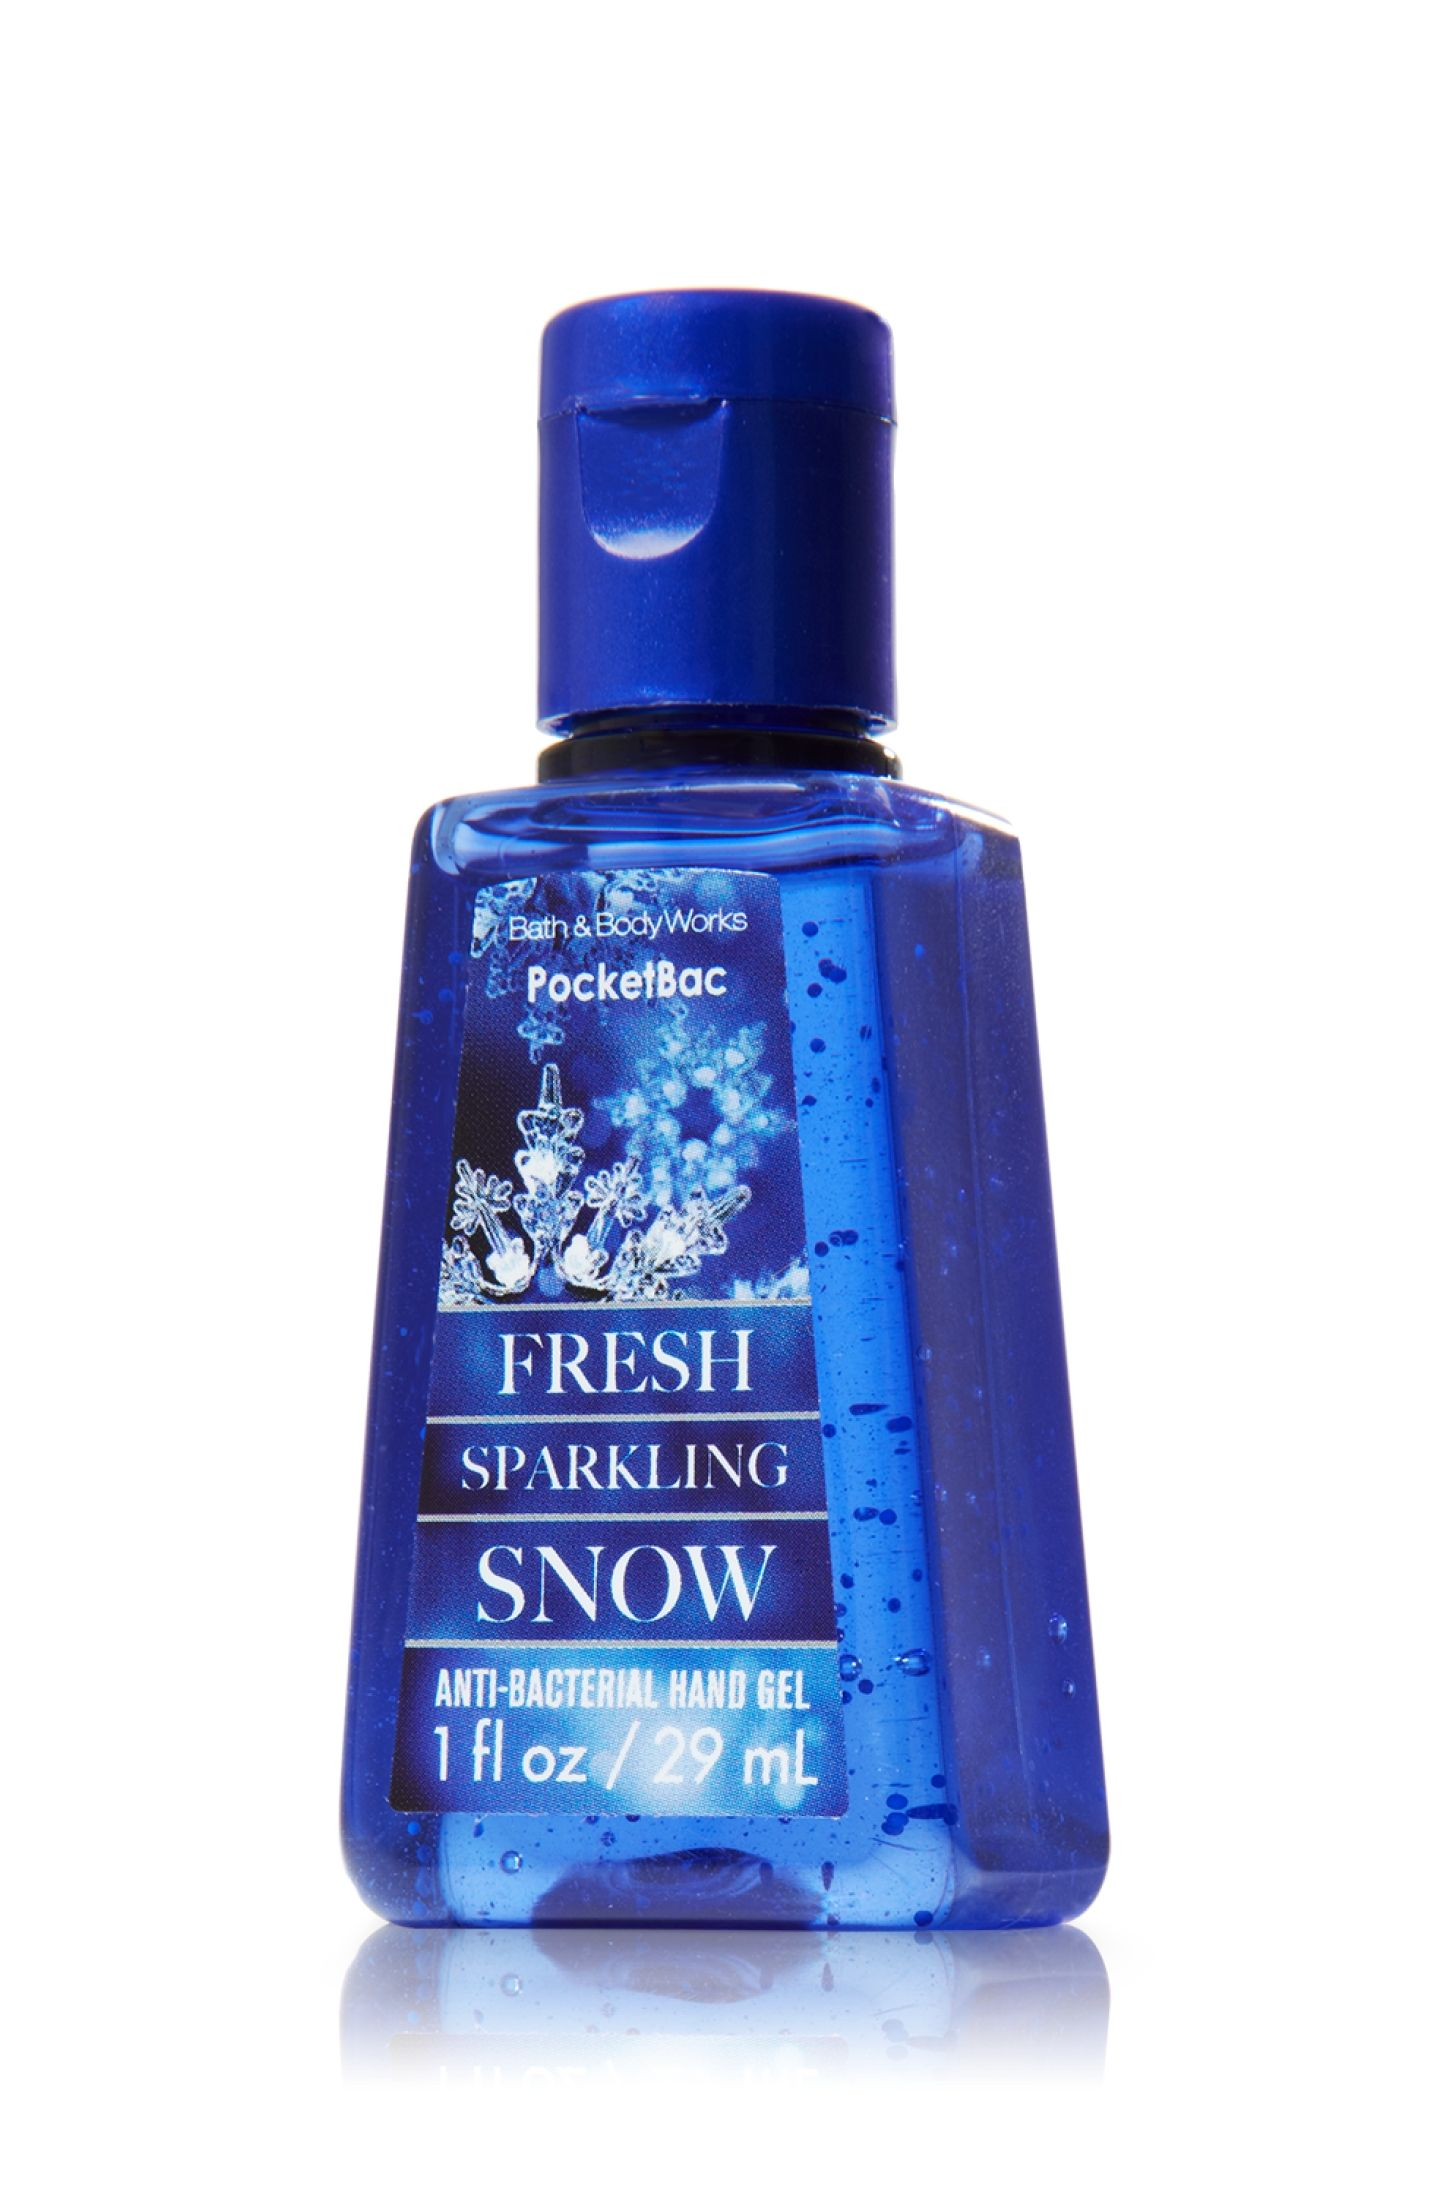 Fresh Sparkling Snow Pocketbac Sanitizing Hand Gel Anti